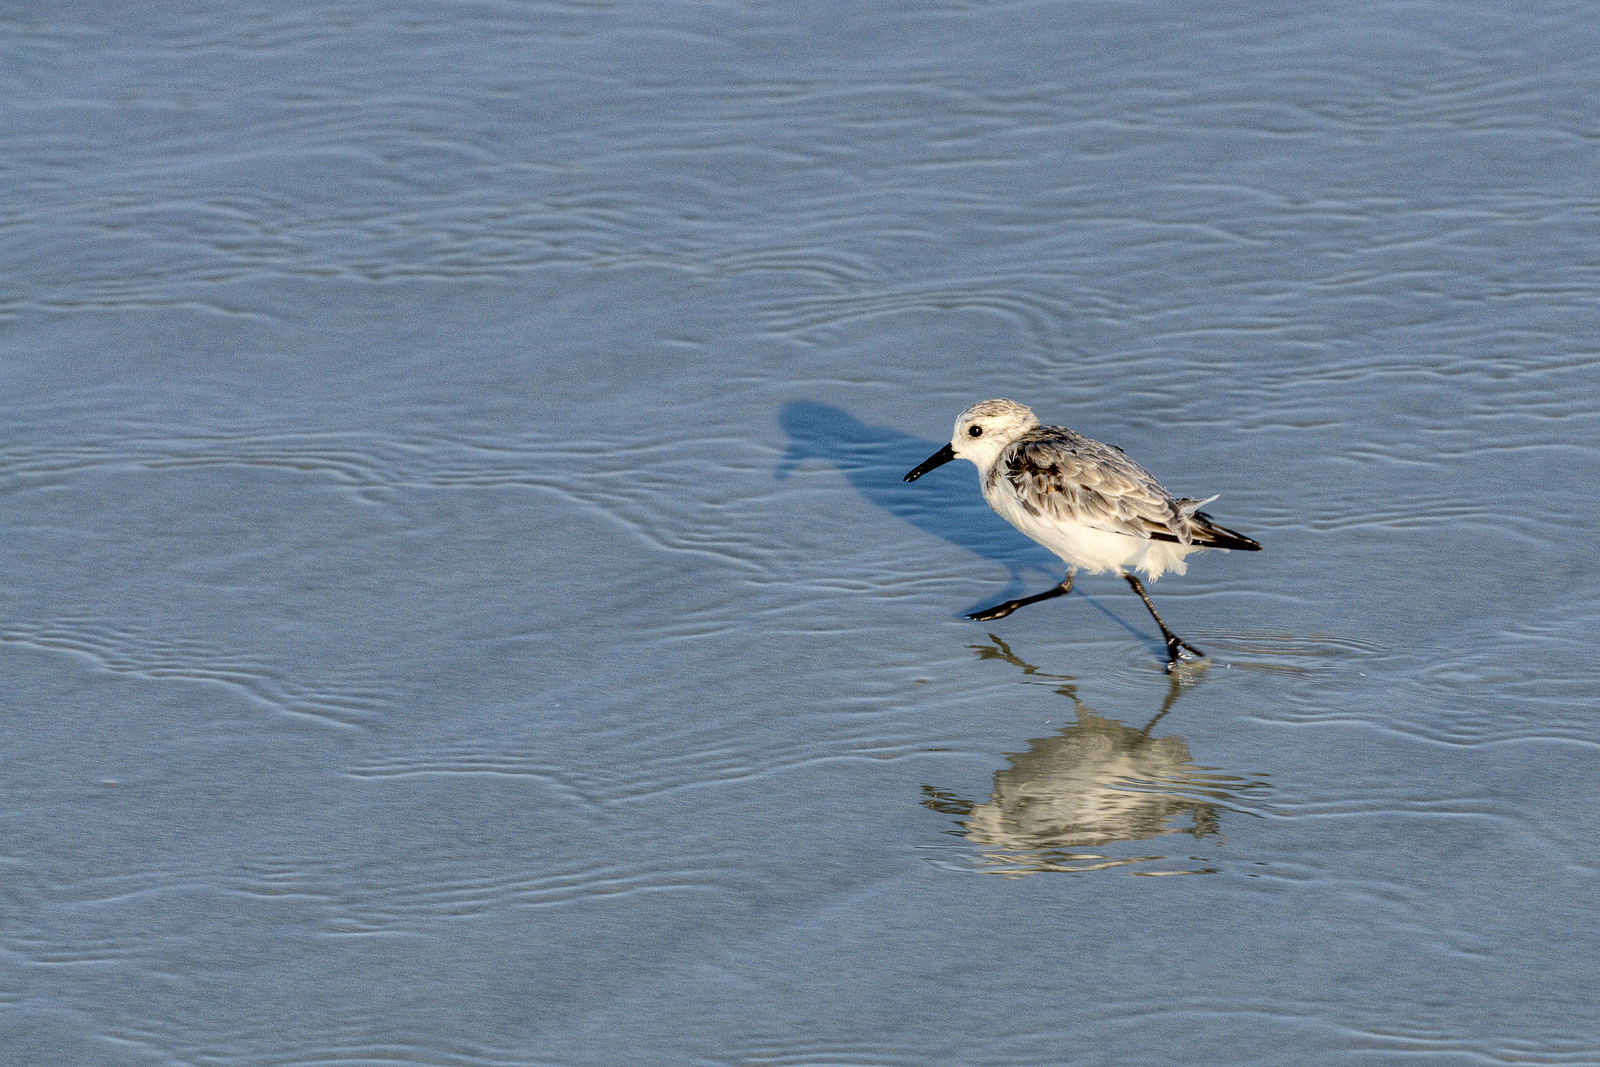 A small shorebird runs across the shallow water at the edge of the ocean at Huntington Beach State Park in Murrells Inlet, SC on Sunday, September 1, 2013. Copyright 2013 Jason Barnette